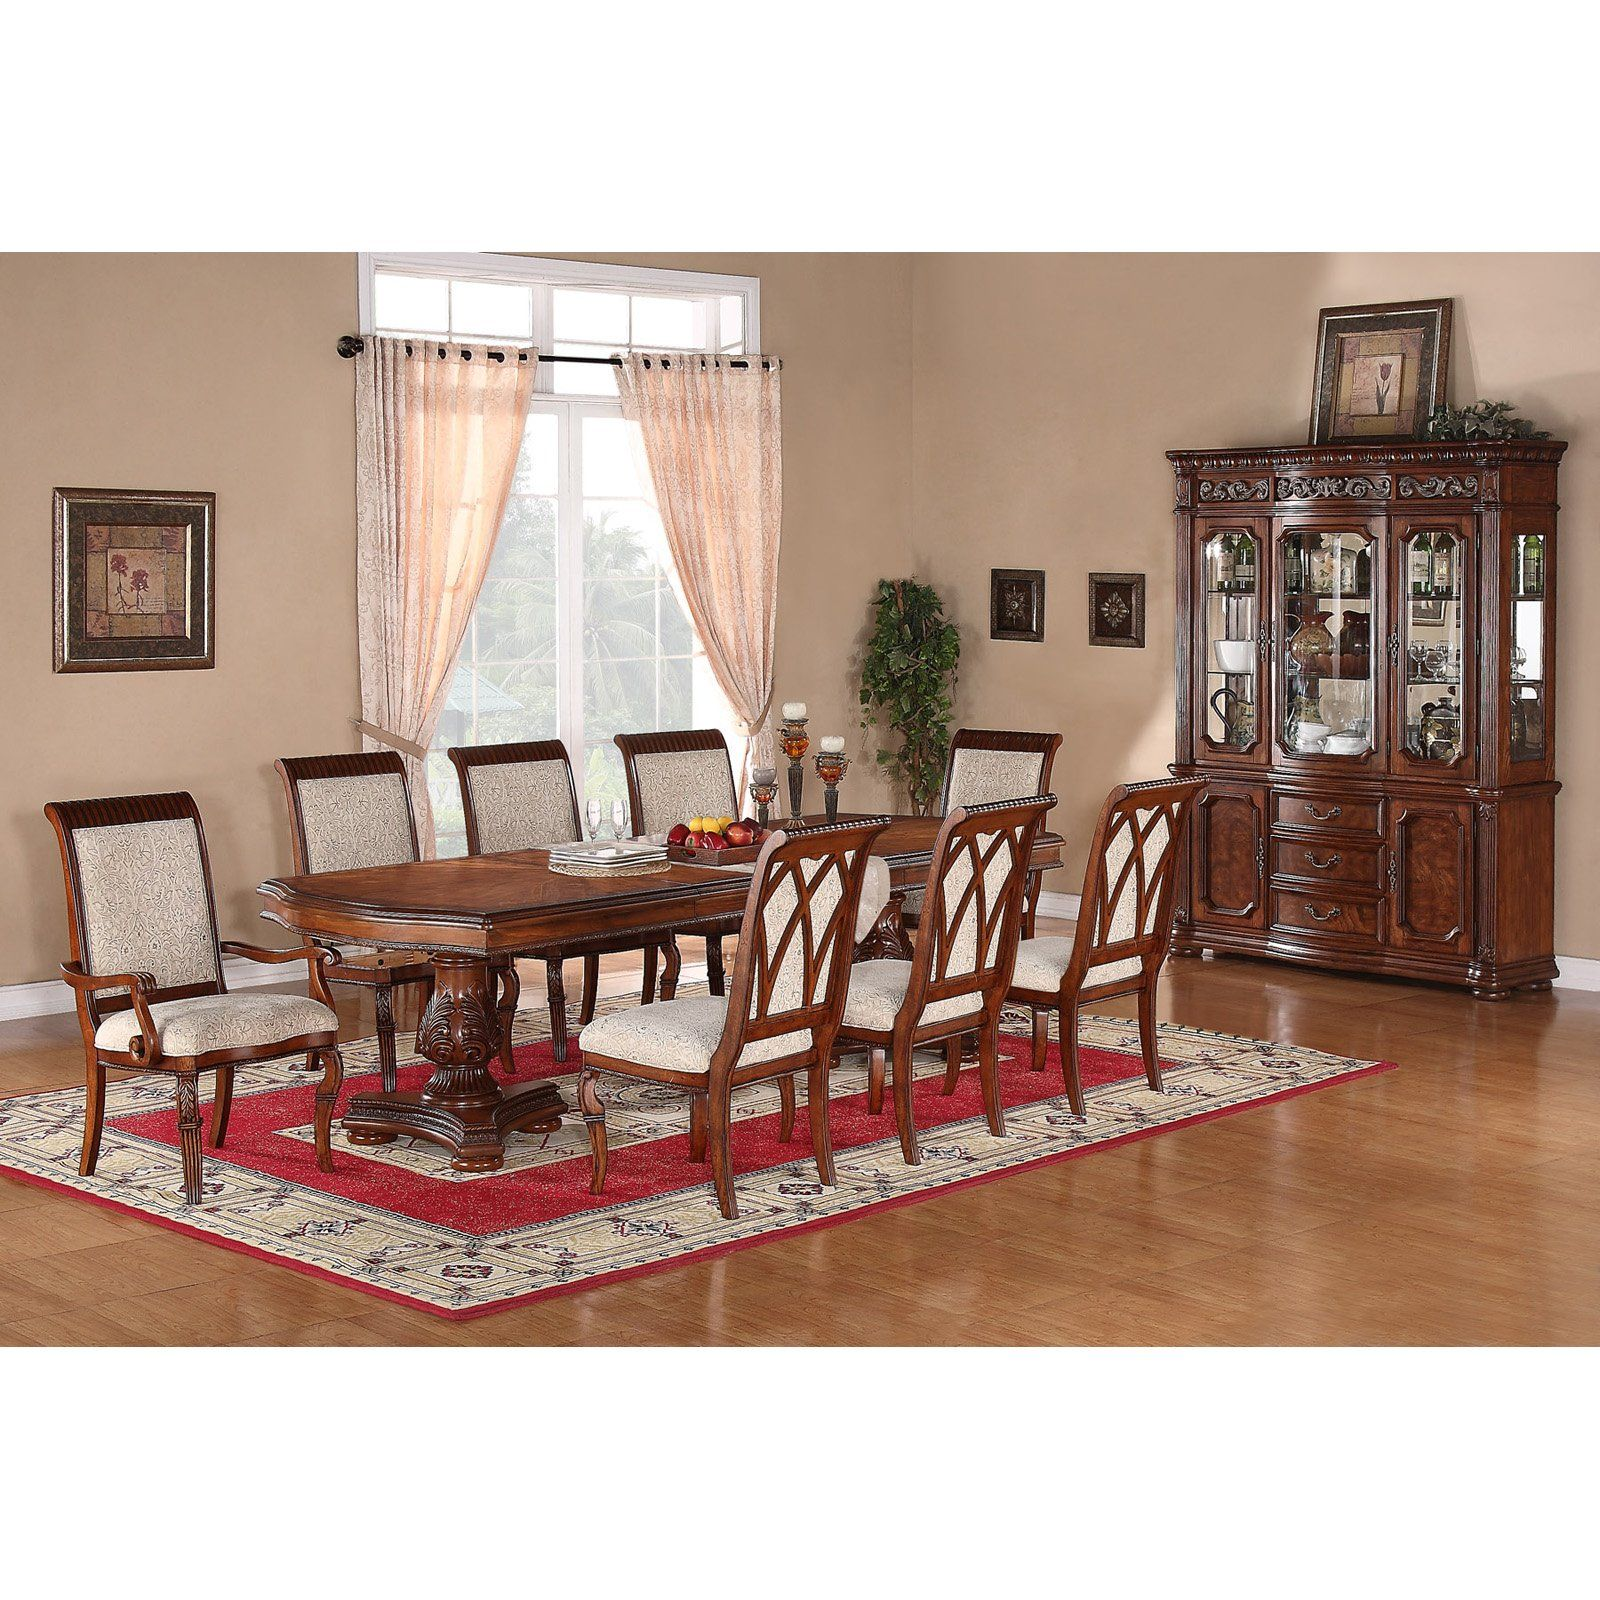 Cordoba Double Pedestal Dining Set $2 990 for table 6 side chairs